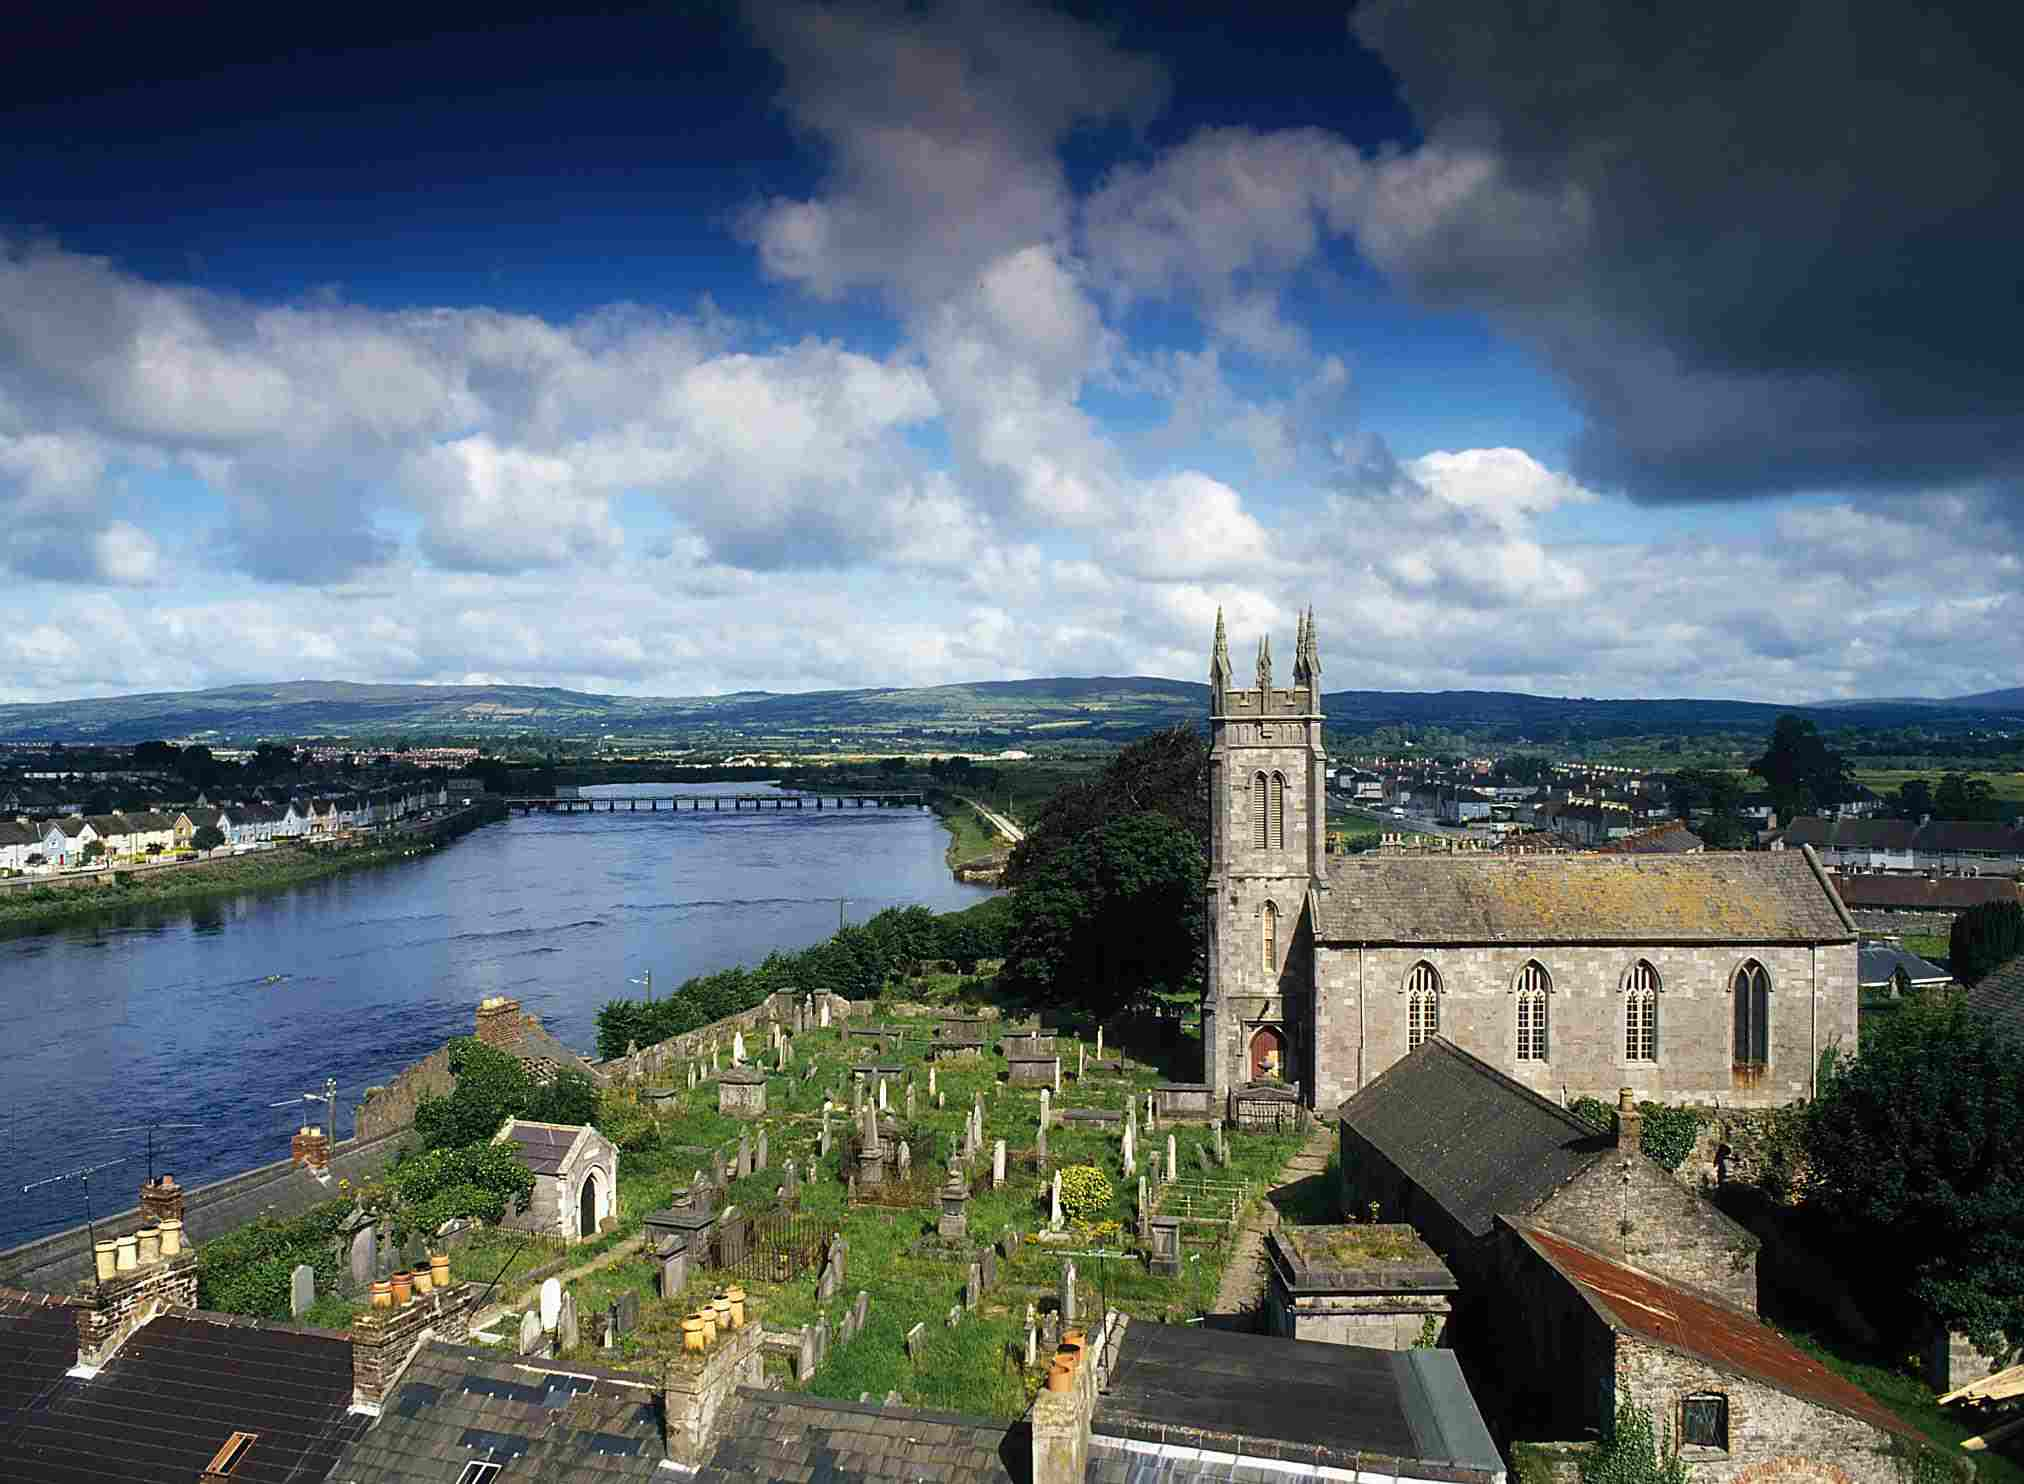 View of Limerick city over St Mary's Cathedral and River Shannon, County Limerick, Ireland.